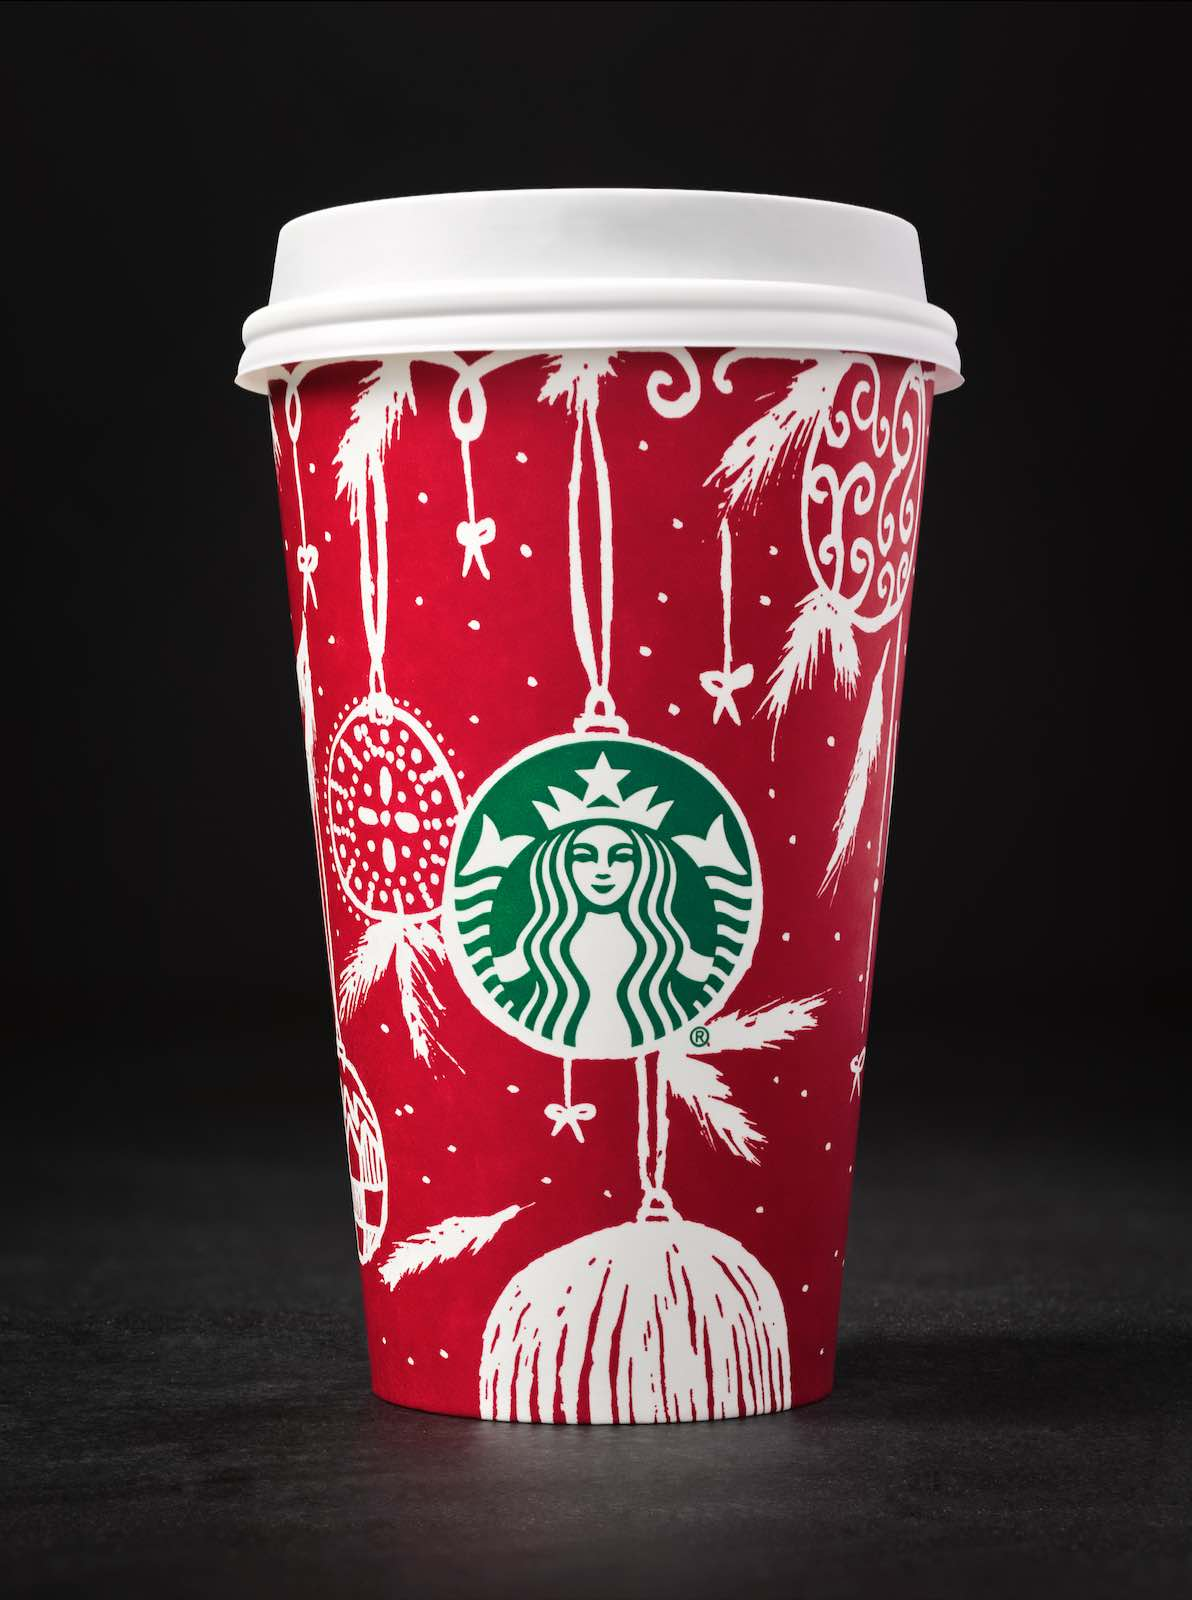 starbucks-ornaments-by-anz-soza-dubai-united-arab-emirates-aspirantsg